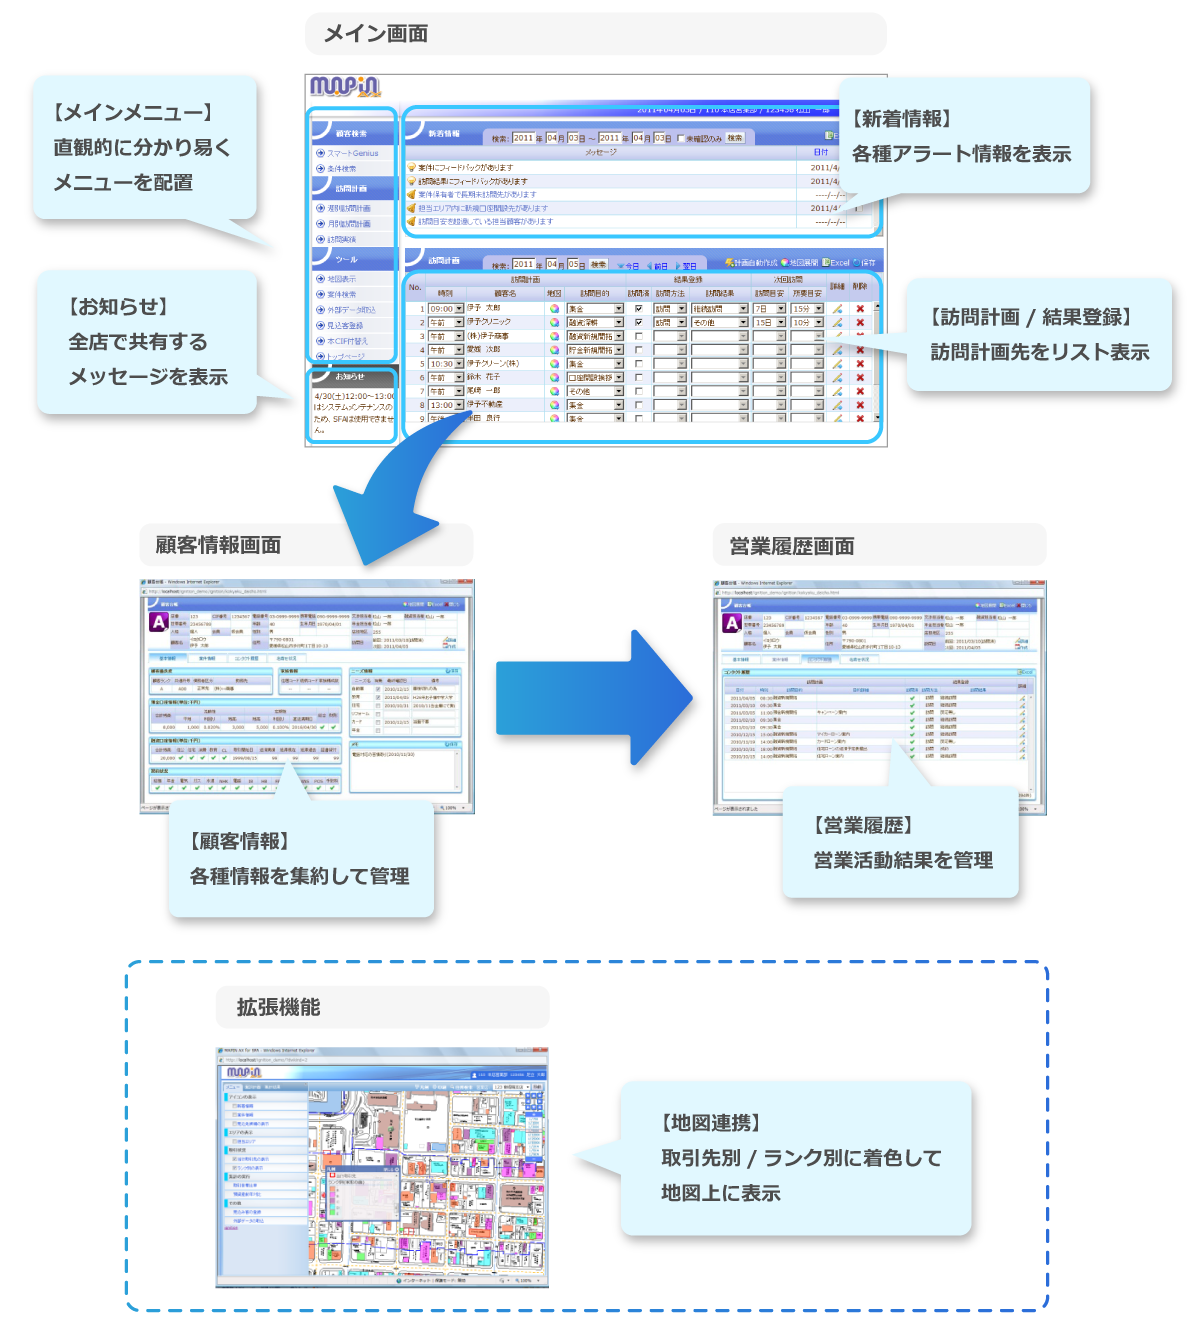 MAPIN 営業支援システム 運用イメージ